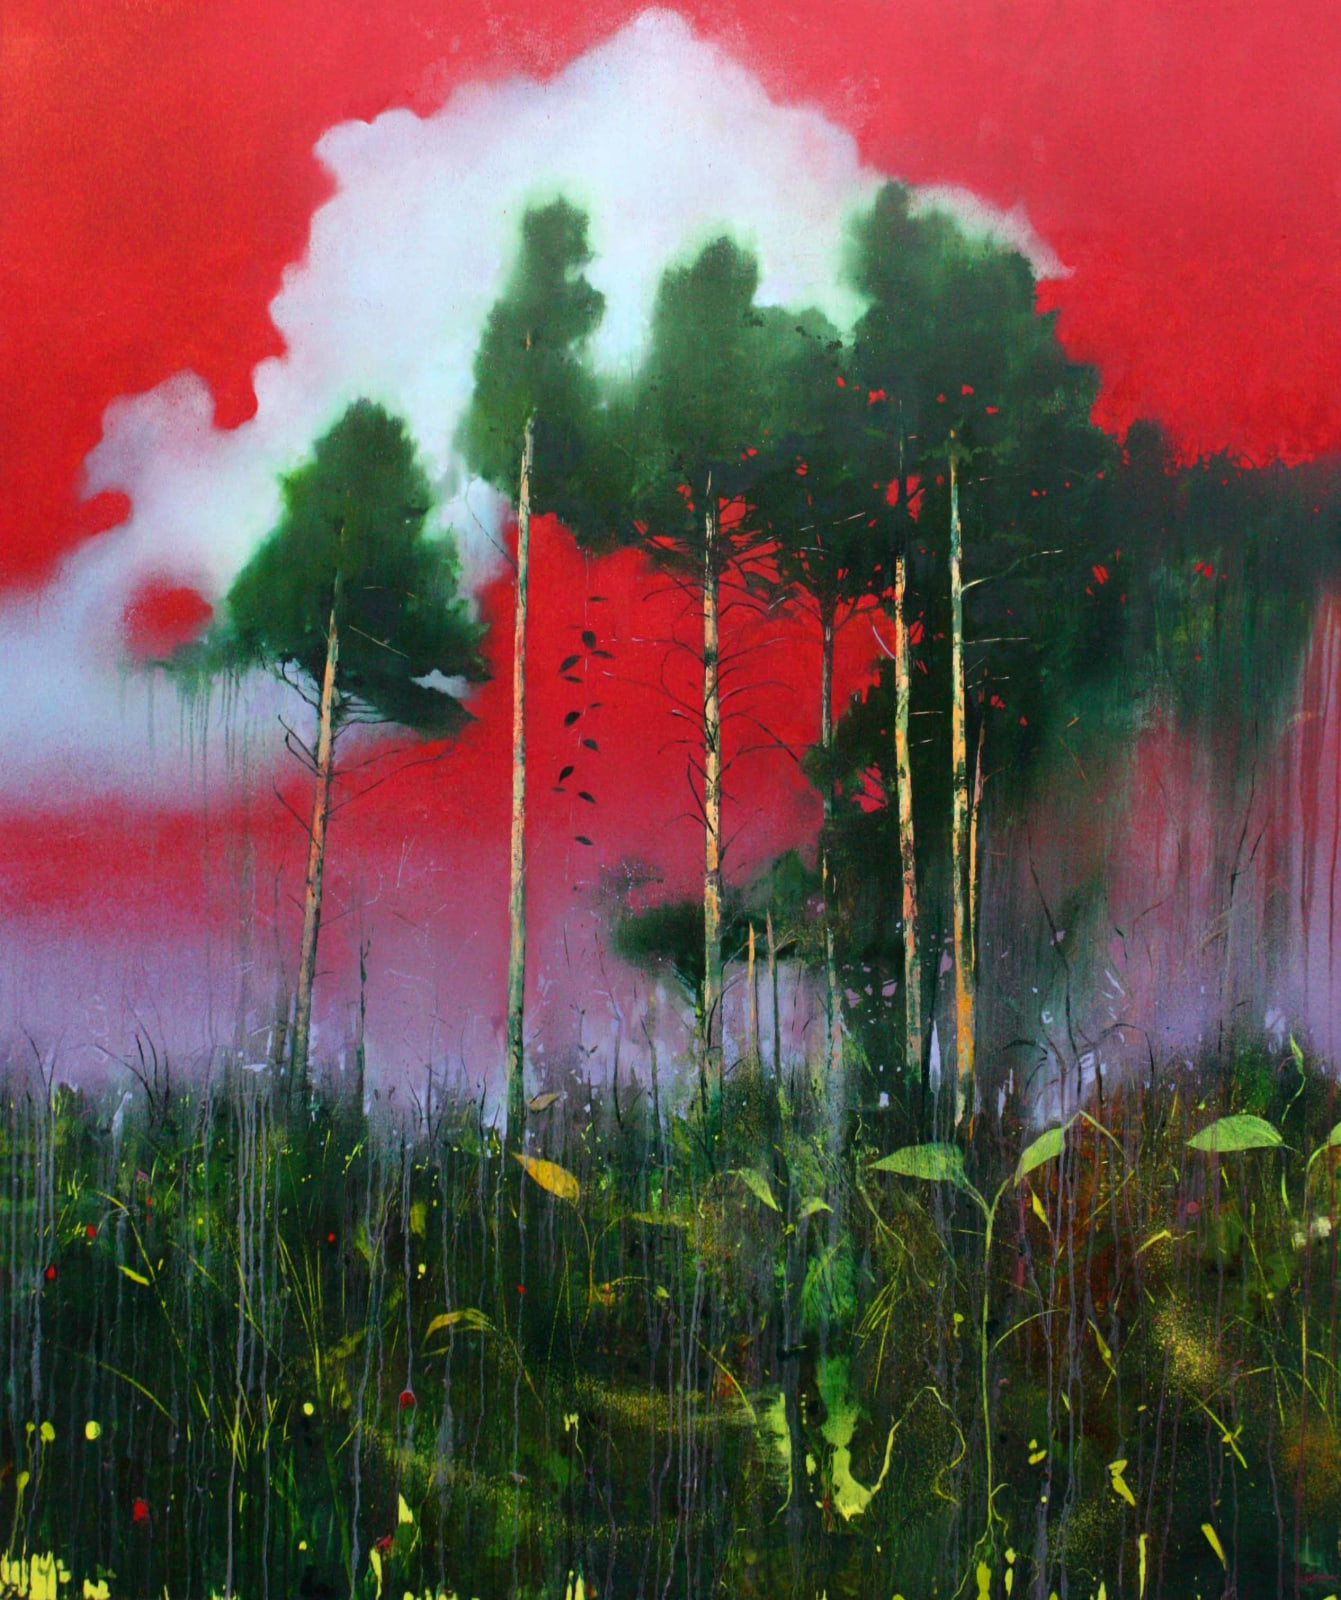 Nick Archer, Red Sky at Night, 2014